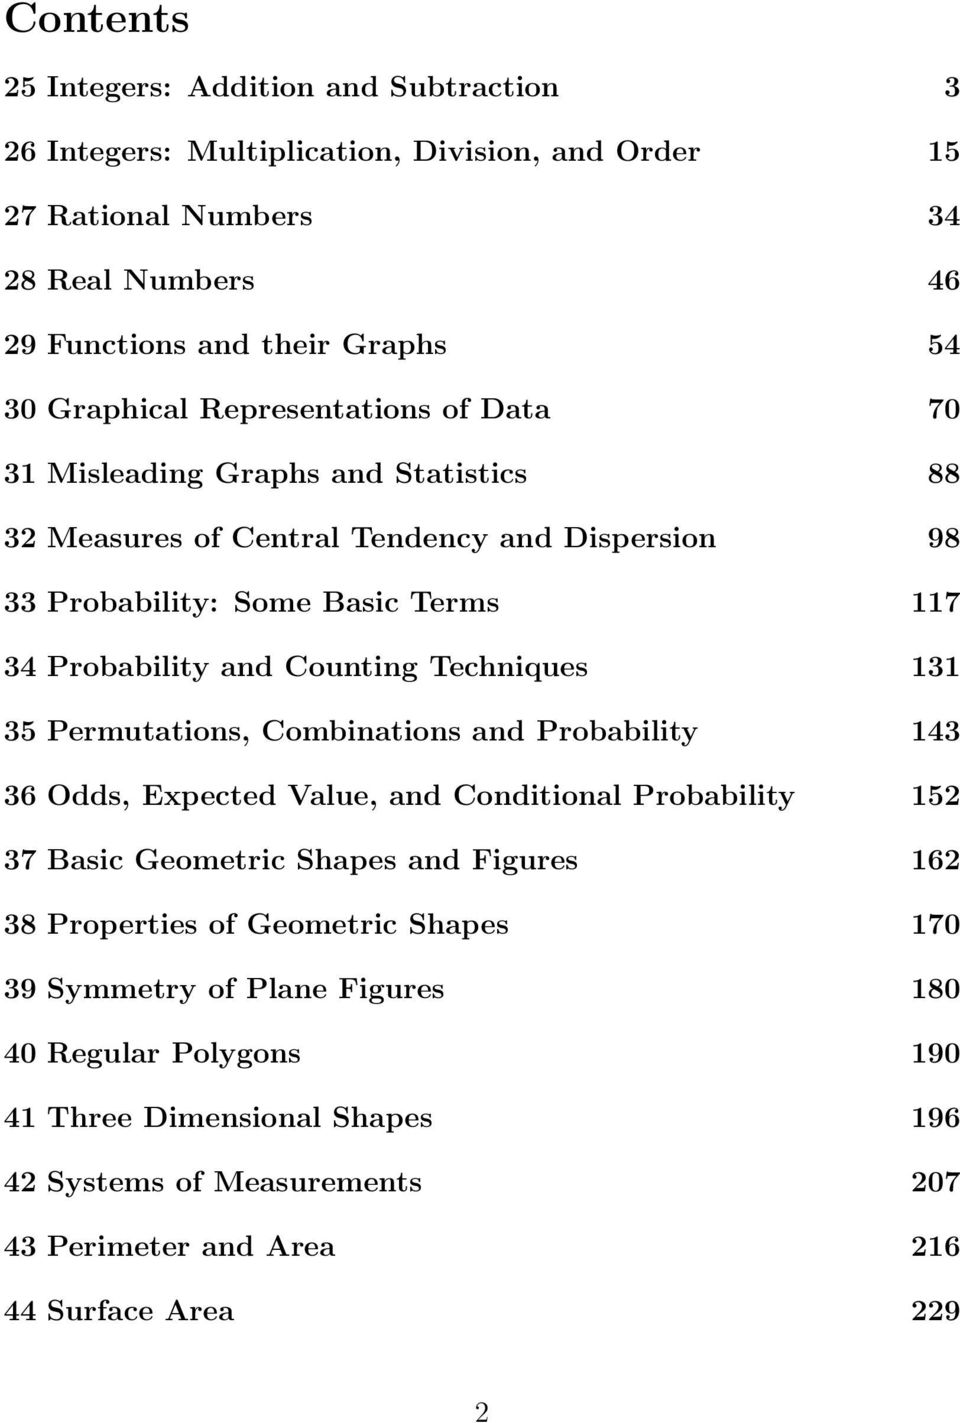 Counting Techniques 131 35 Permutations, Combinations and Probability 143 36 Odds, Expected Value, and Conditional Probability 152 37 Basic Geometric Shapes and Figures 162 38